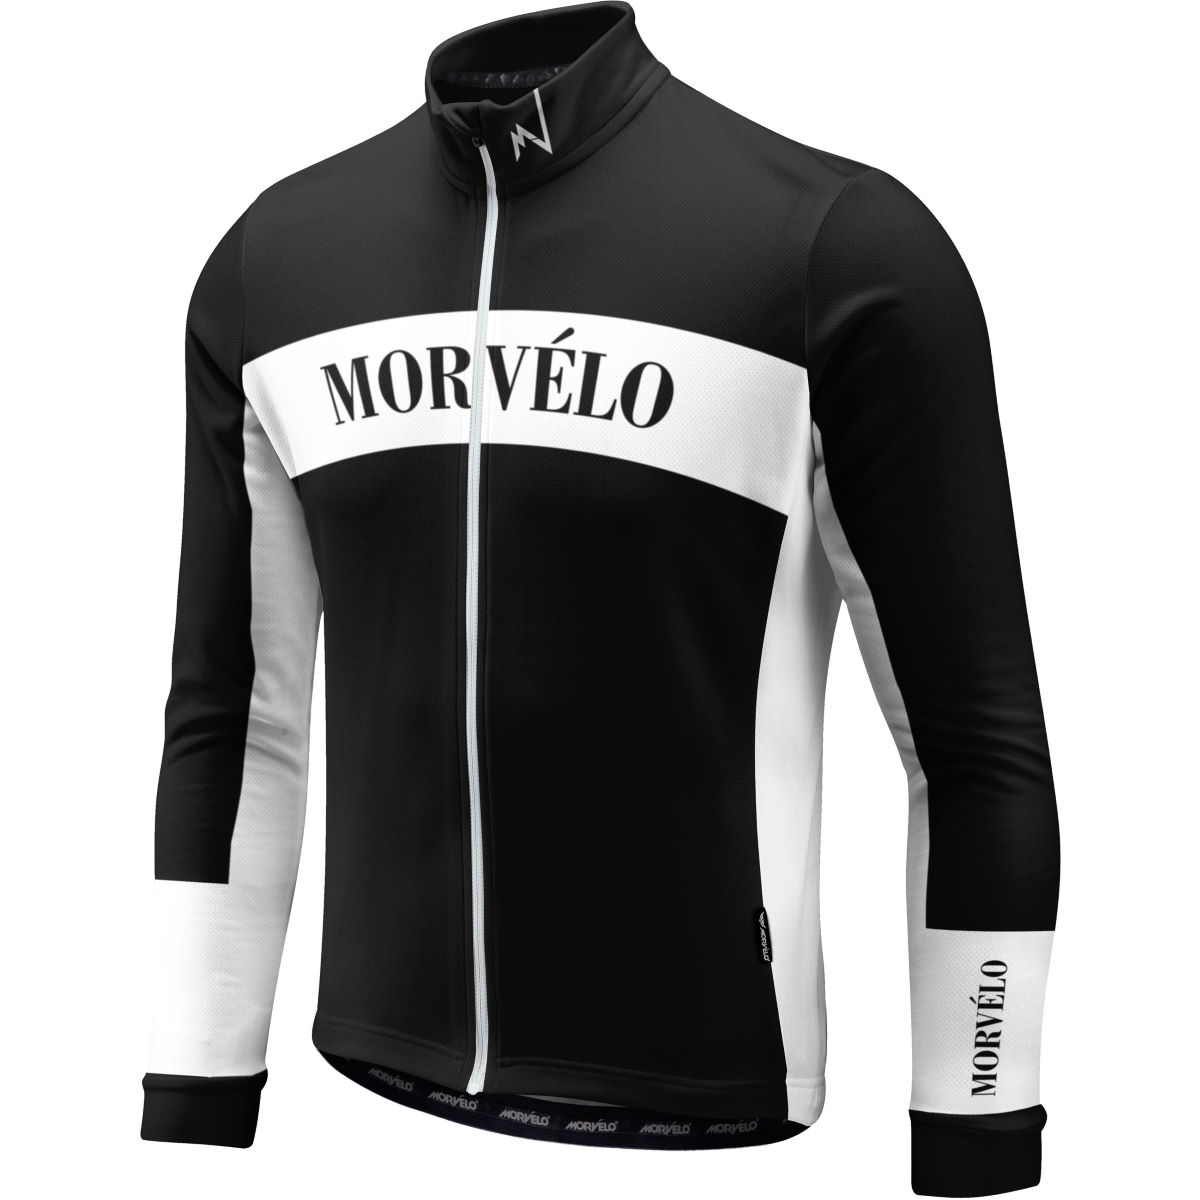 Morvelo Classique ThermoActive Long Sleeve Jersey